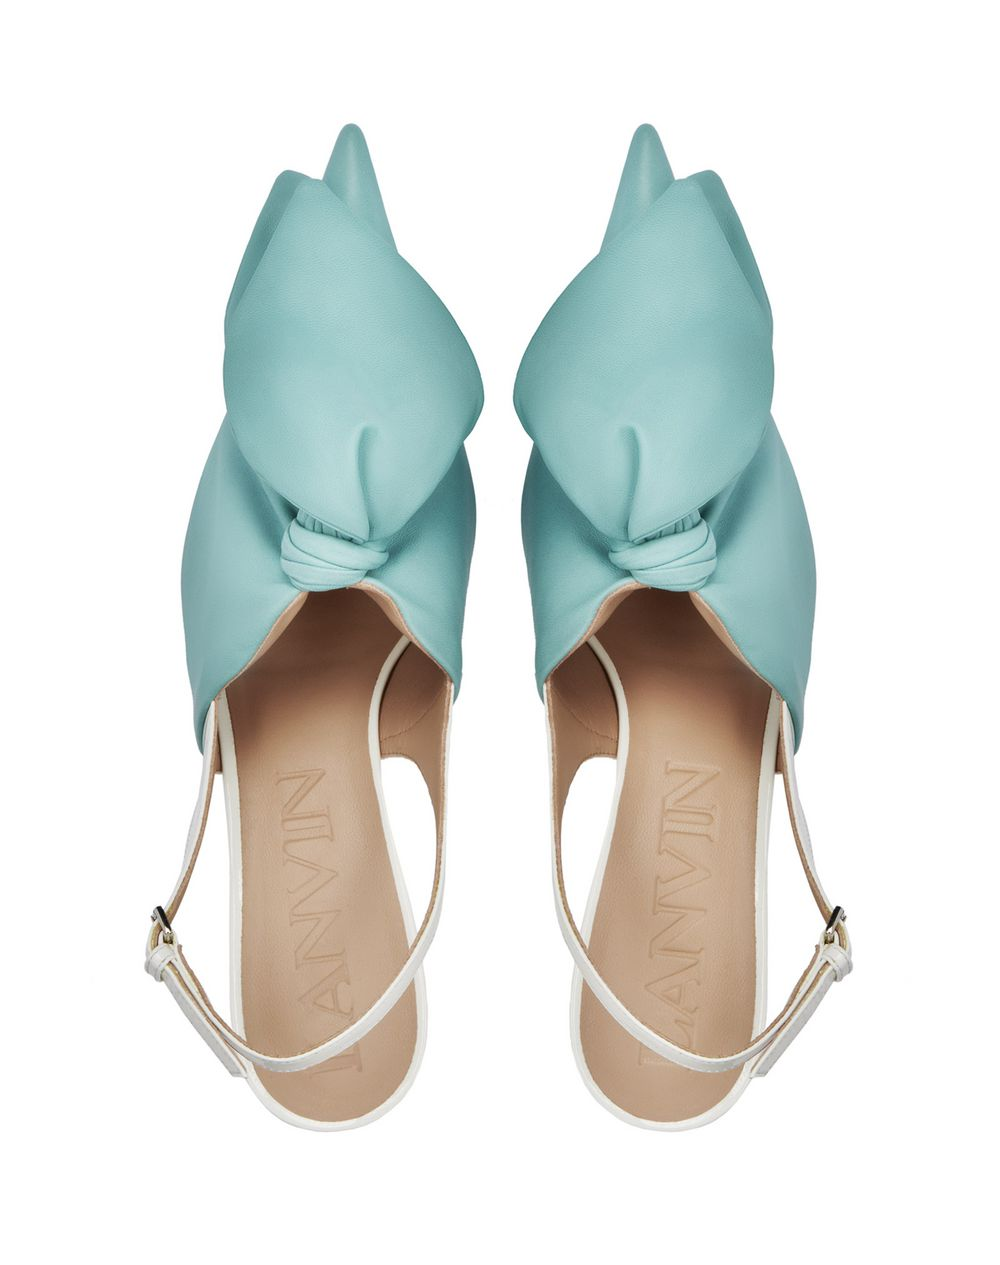 SLING BACK PUMP - Lanvin